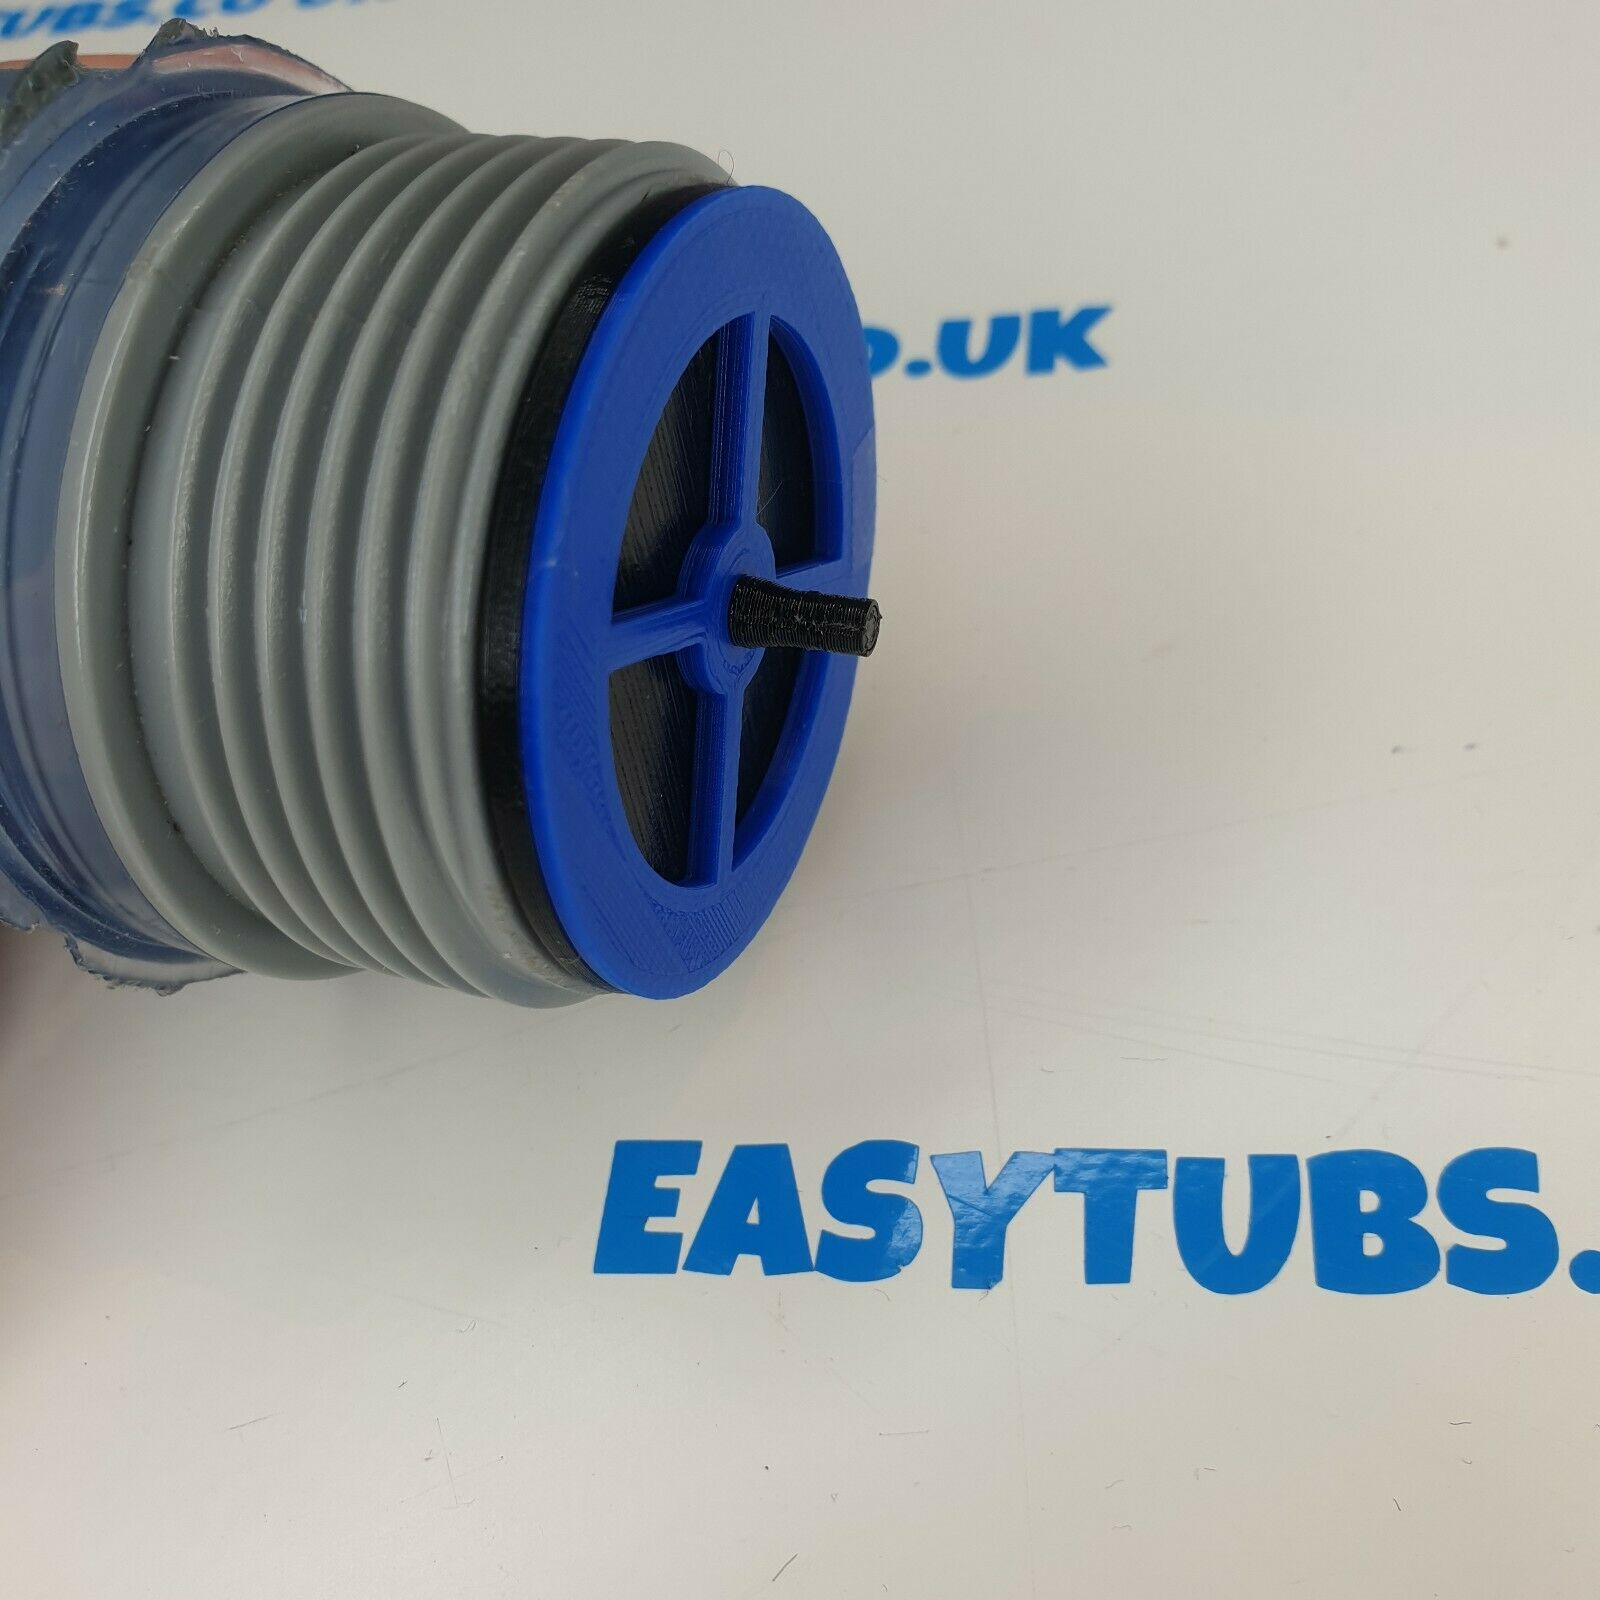 (1WV) EasyTubs Lazy spa Non Return Valve Instant Fix Leaking A Connection